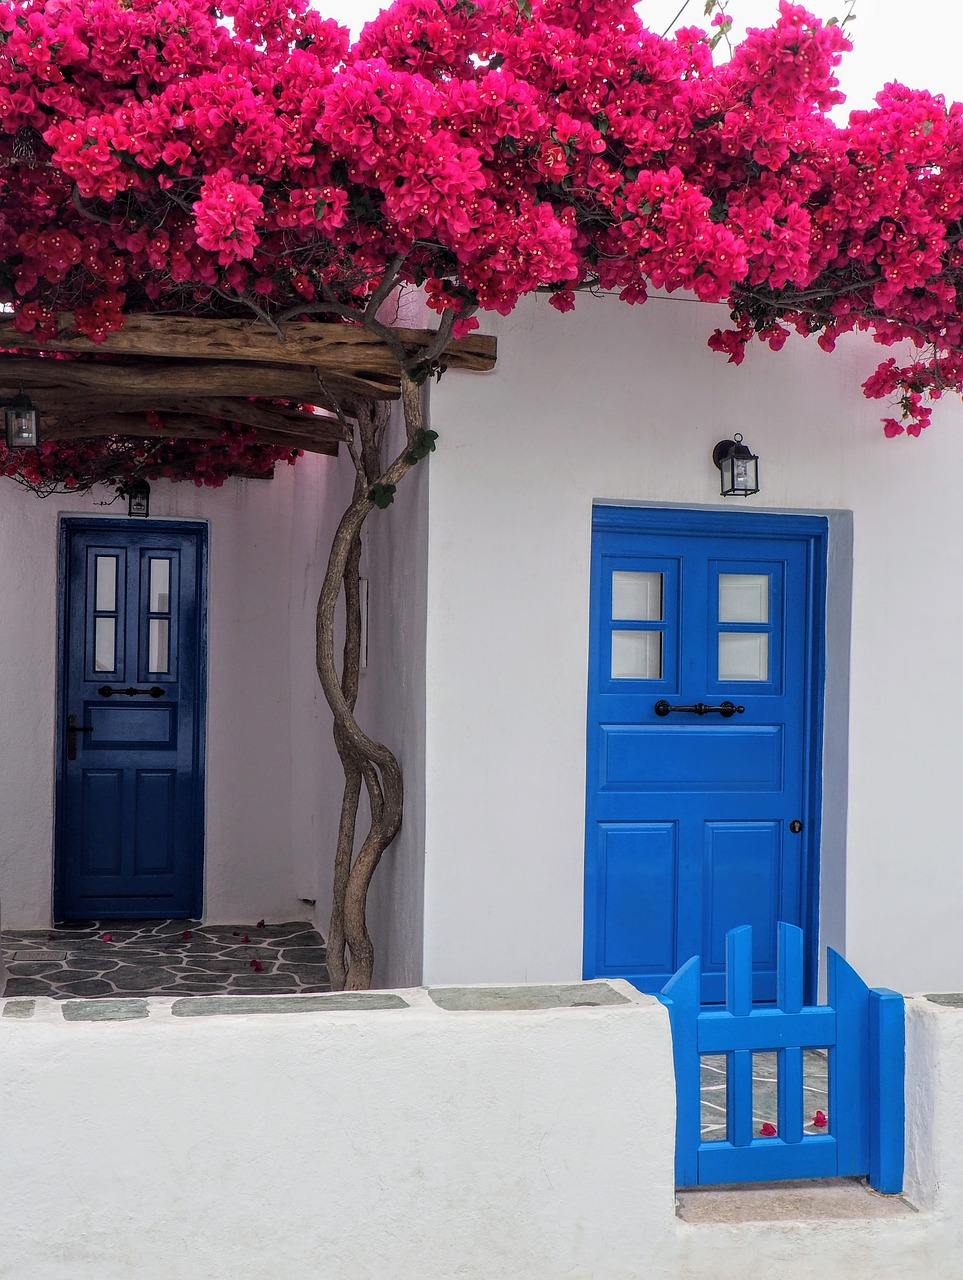 Doorway in Folegandros island in Greece